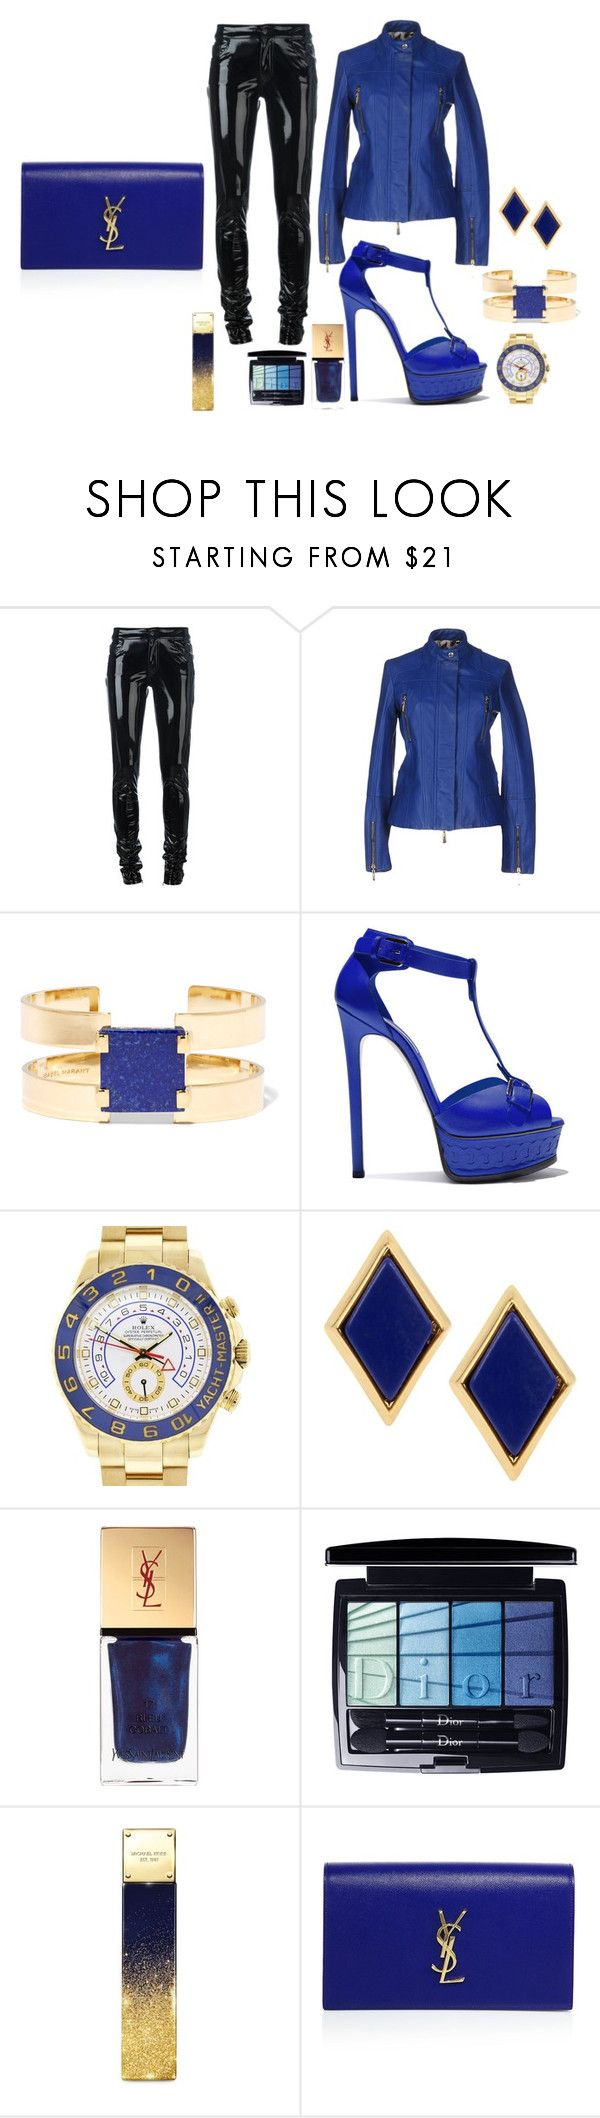 date for tonight 5 to 7 by Diva of Cake  on Polyvore featuring mode, Just Cavalli, Anthony Vaccarello, Casadei, Yves Saint Laurent, Rolex, Isabel Marant, Charm & Chain, Christian Dior and Michael Kors